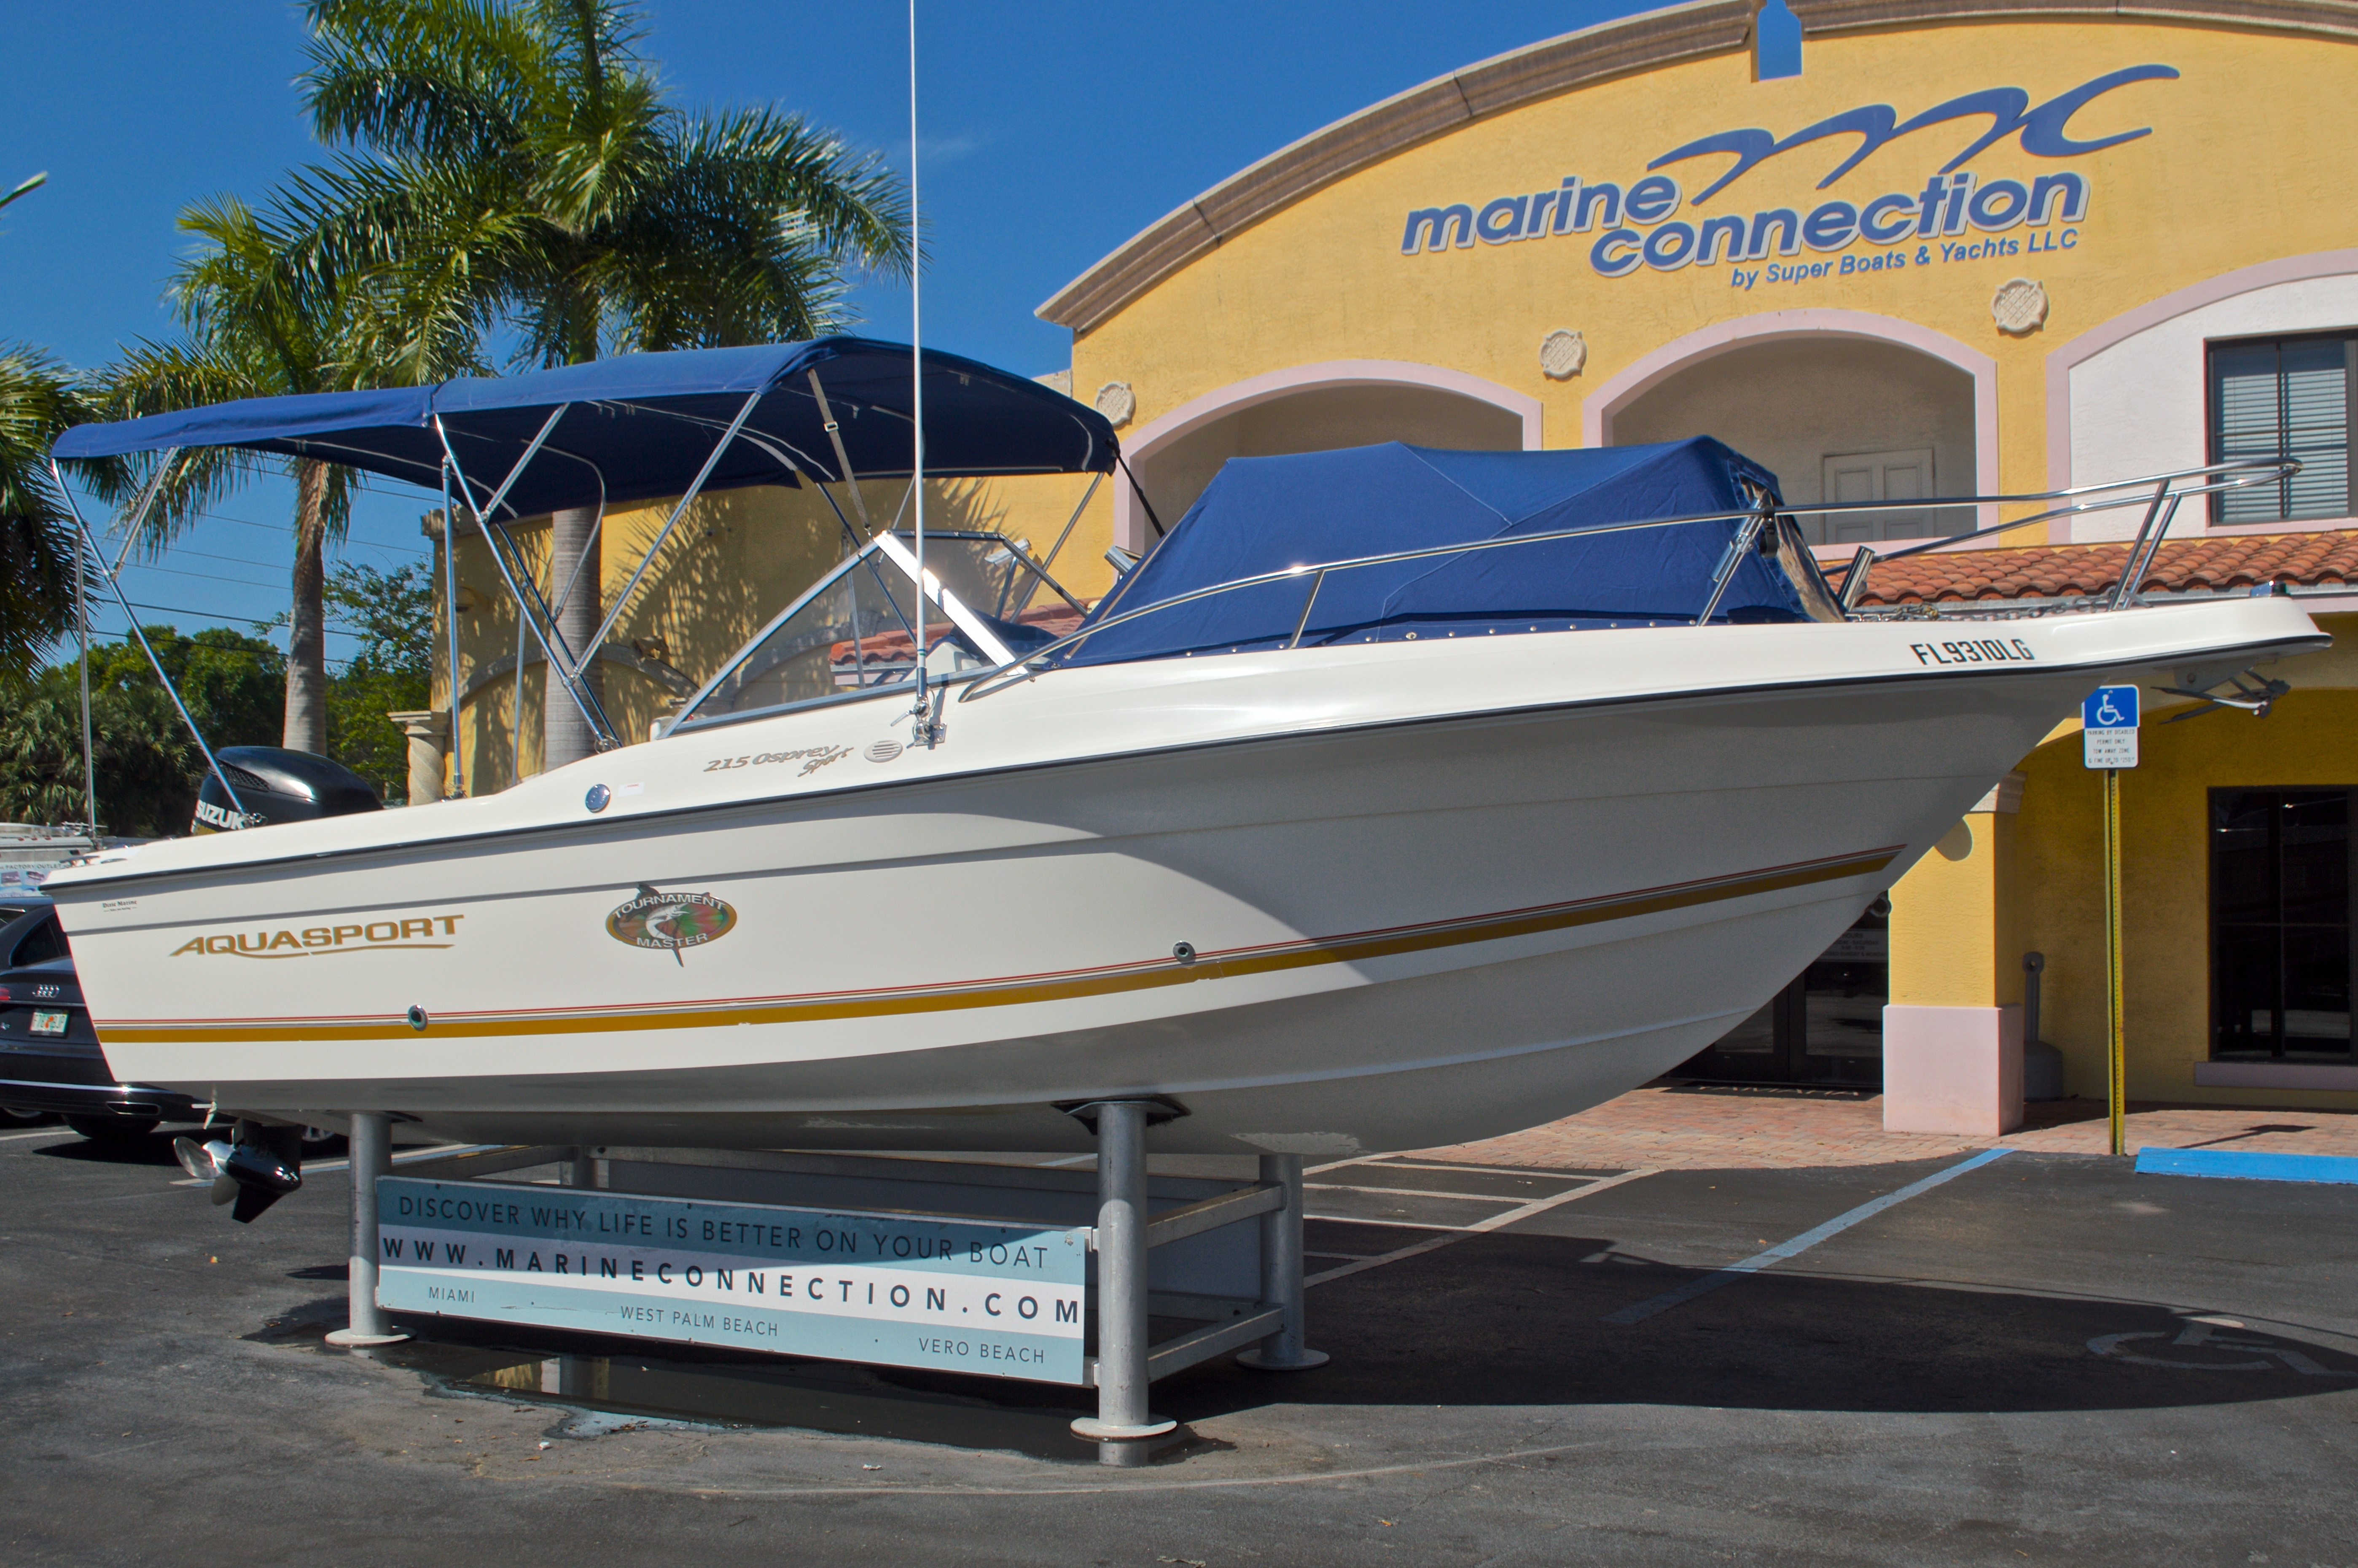 Thumbnail 1 for Used 2000 Aquasport 215 Osprey Sport DC boat for sale in West Palm Beach, FL